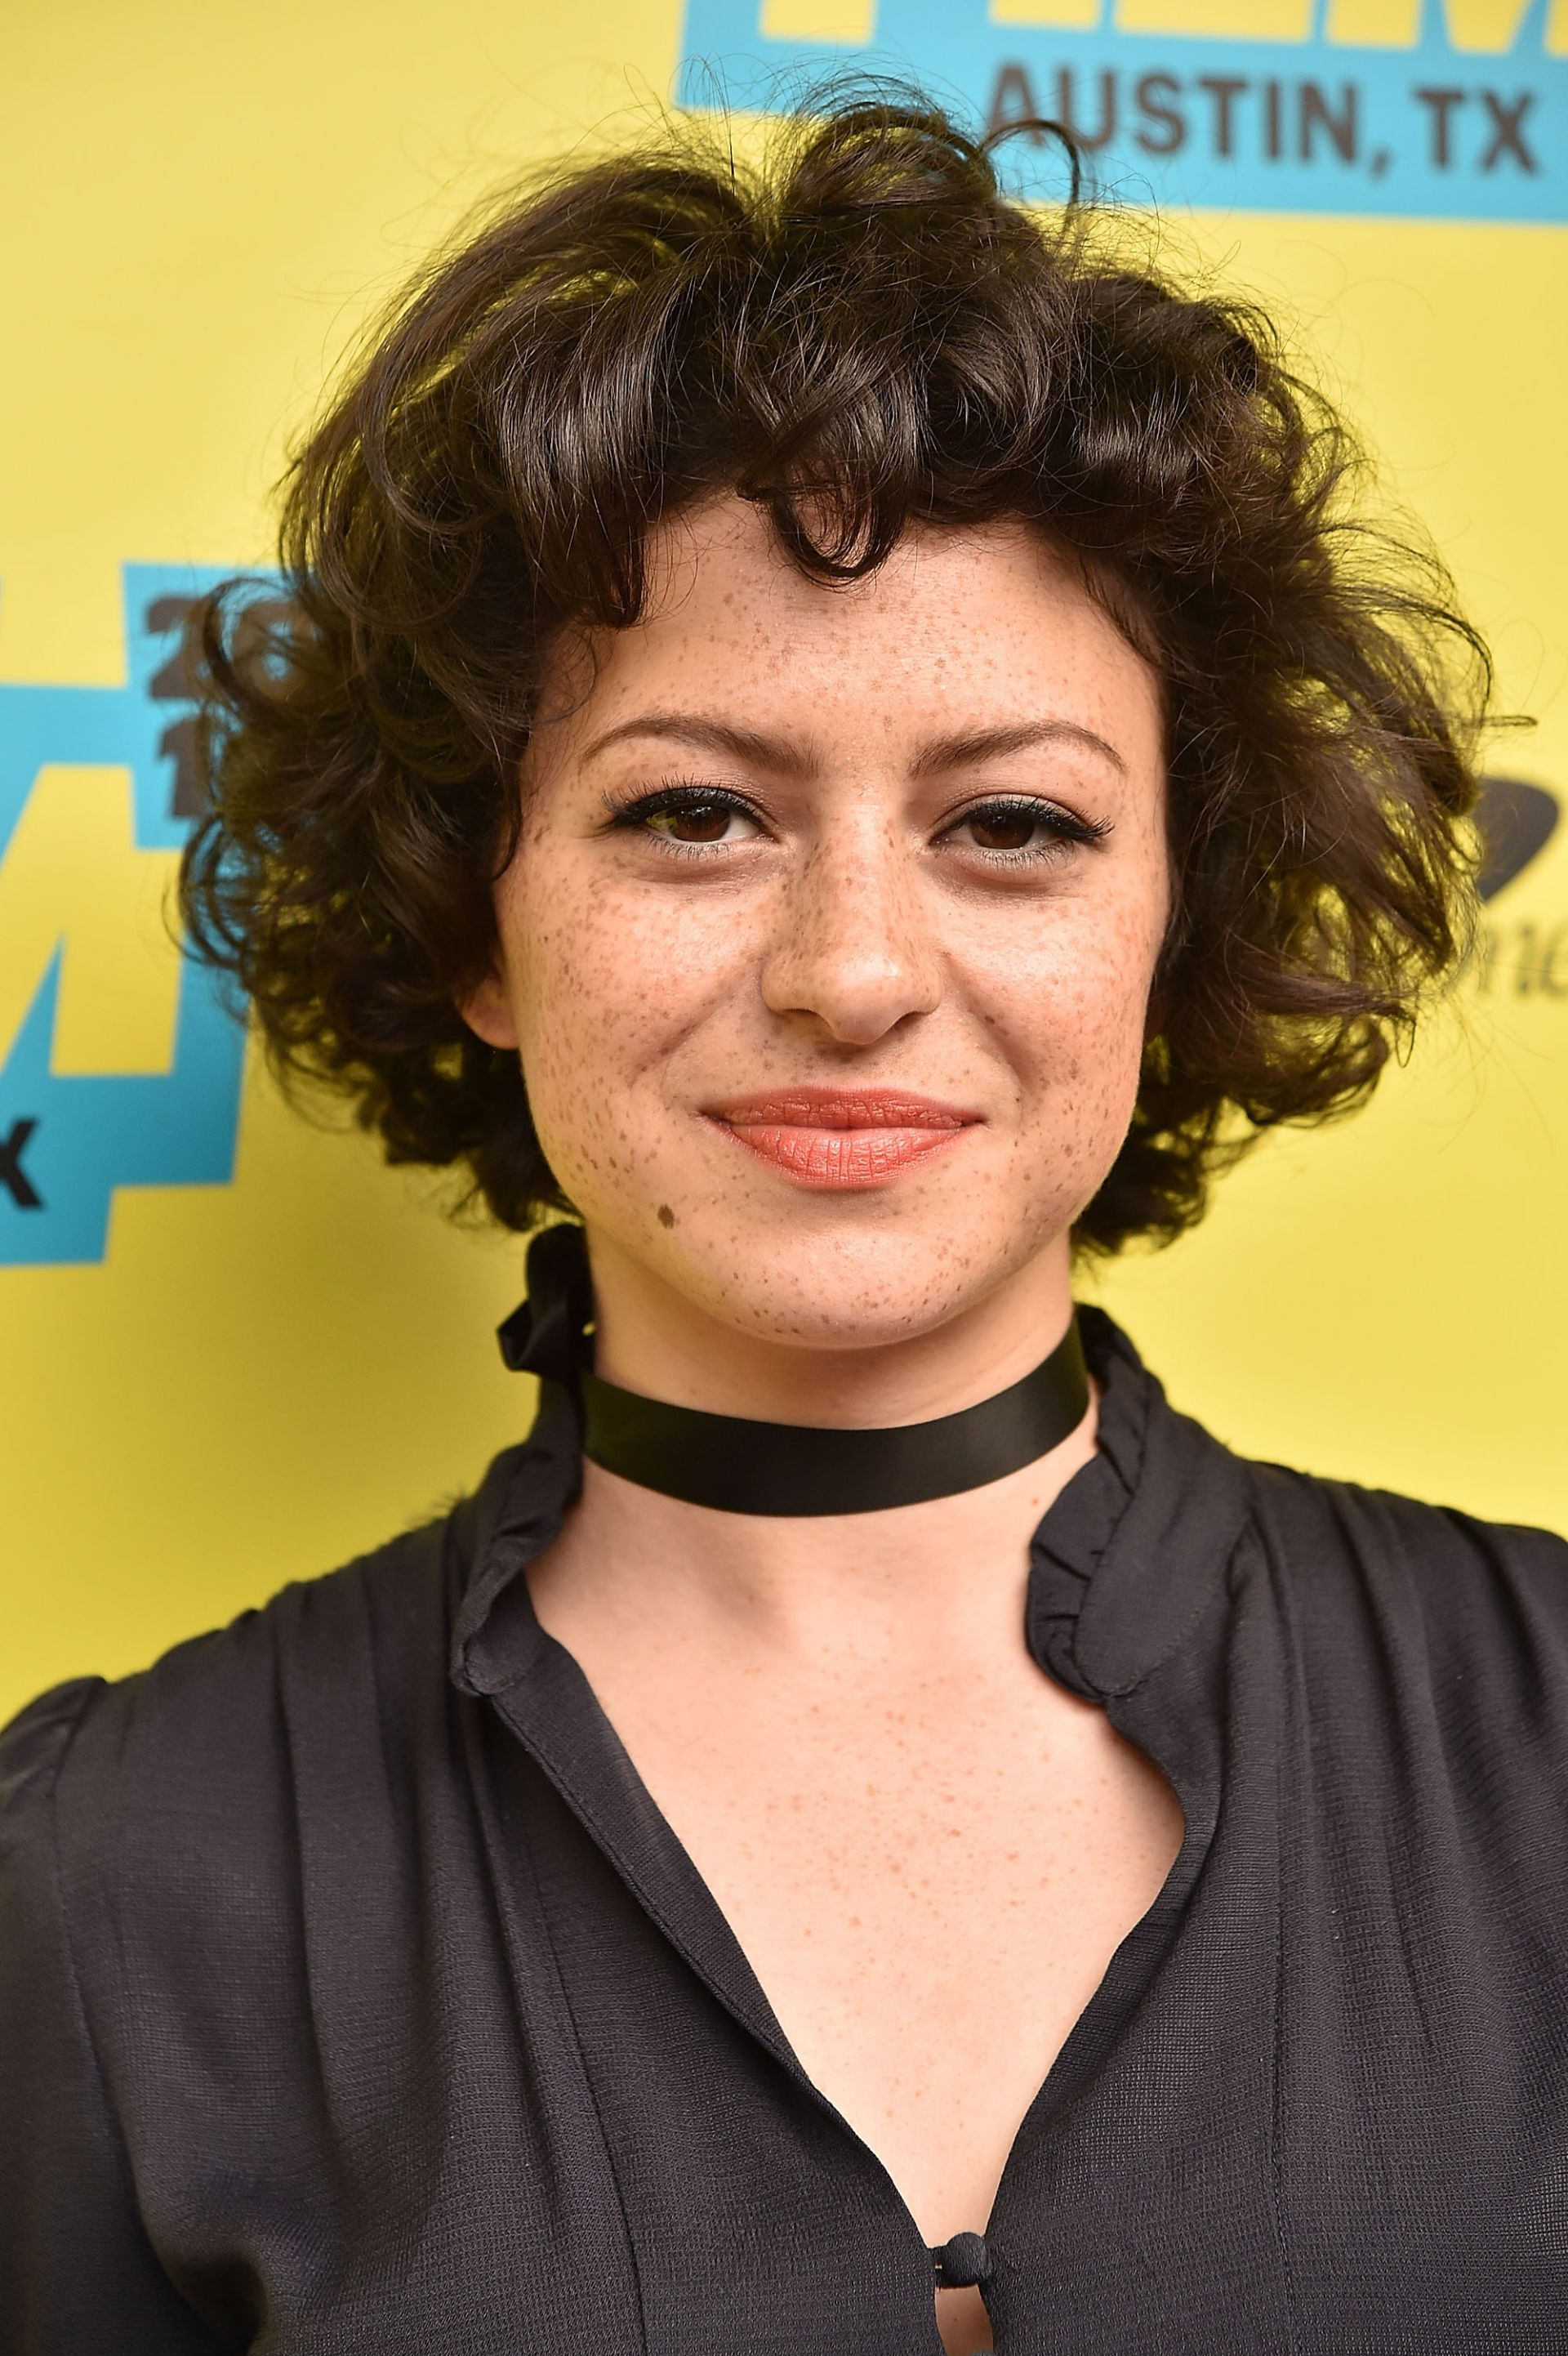 Image result for alia shawkat forbes